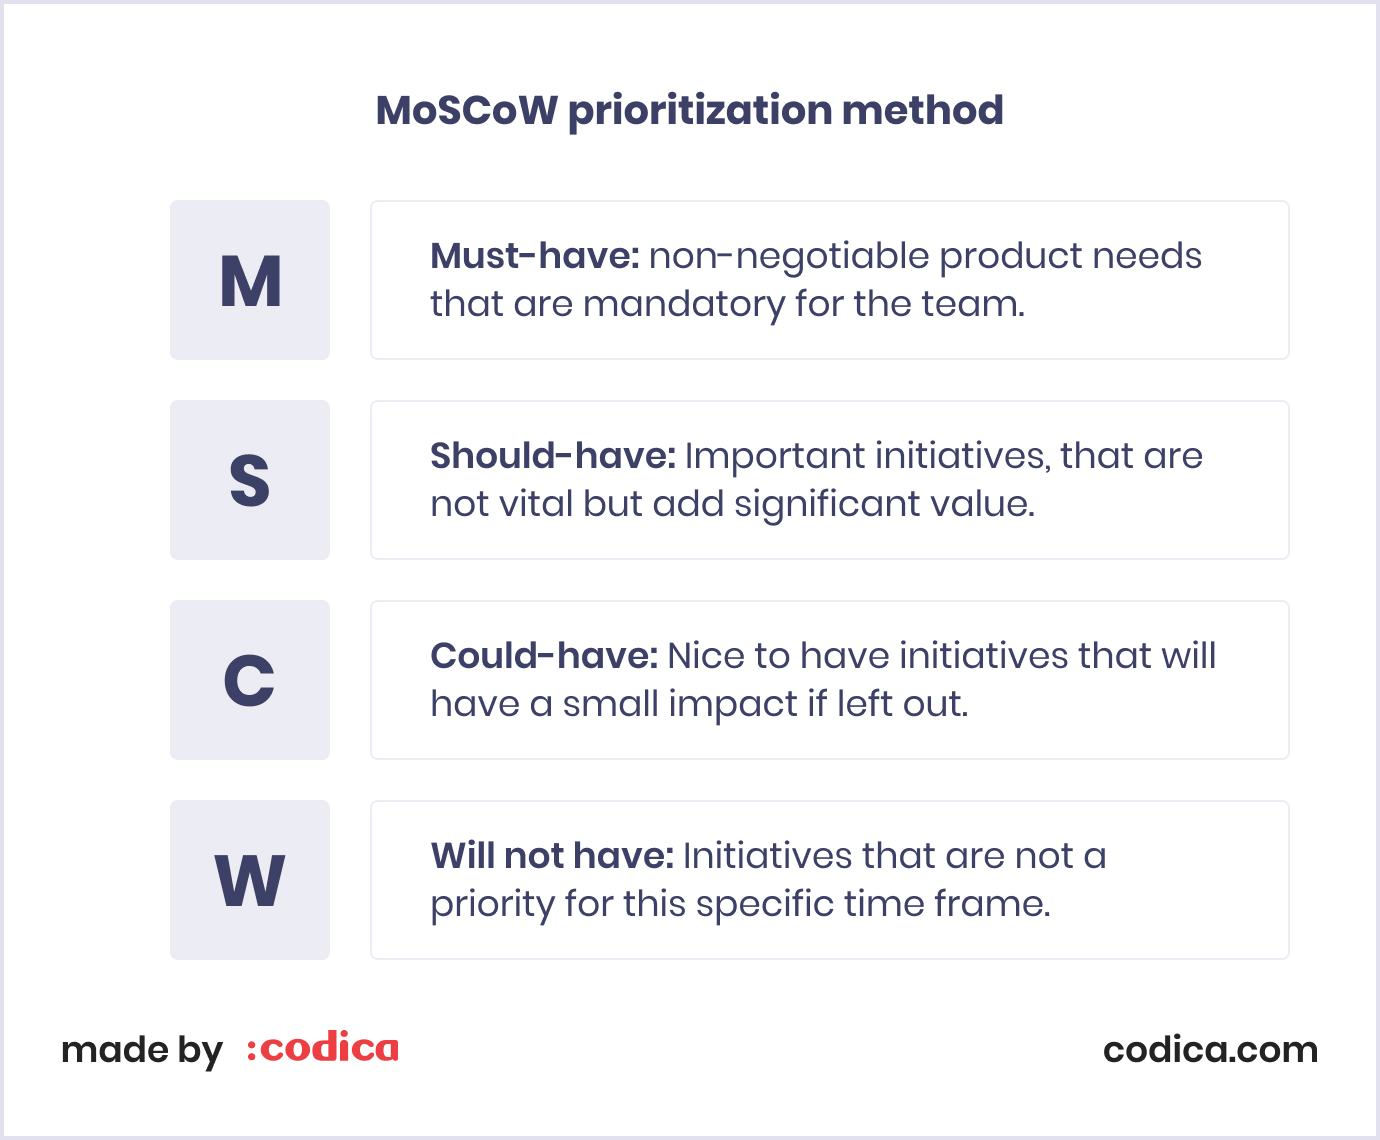 MoSCoW prioritization method to select functionality for SaaS MVP